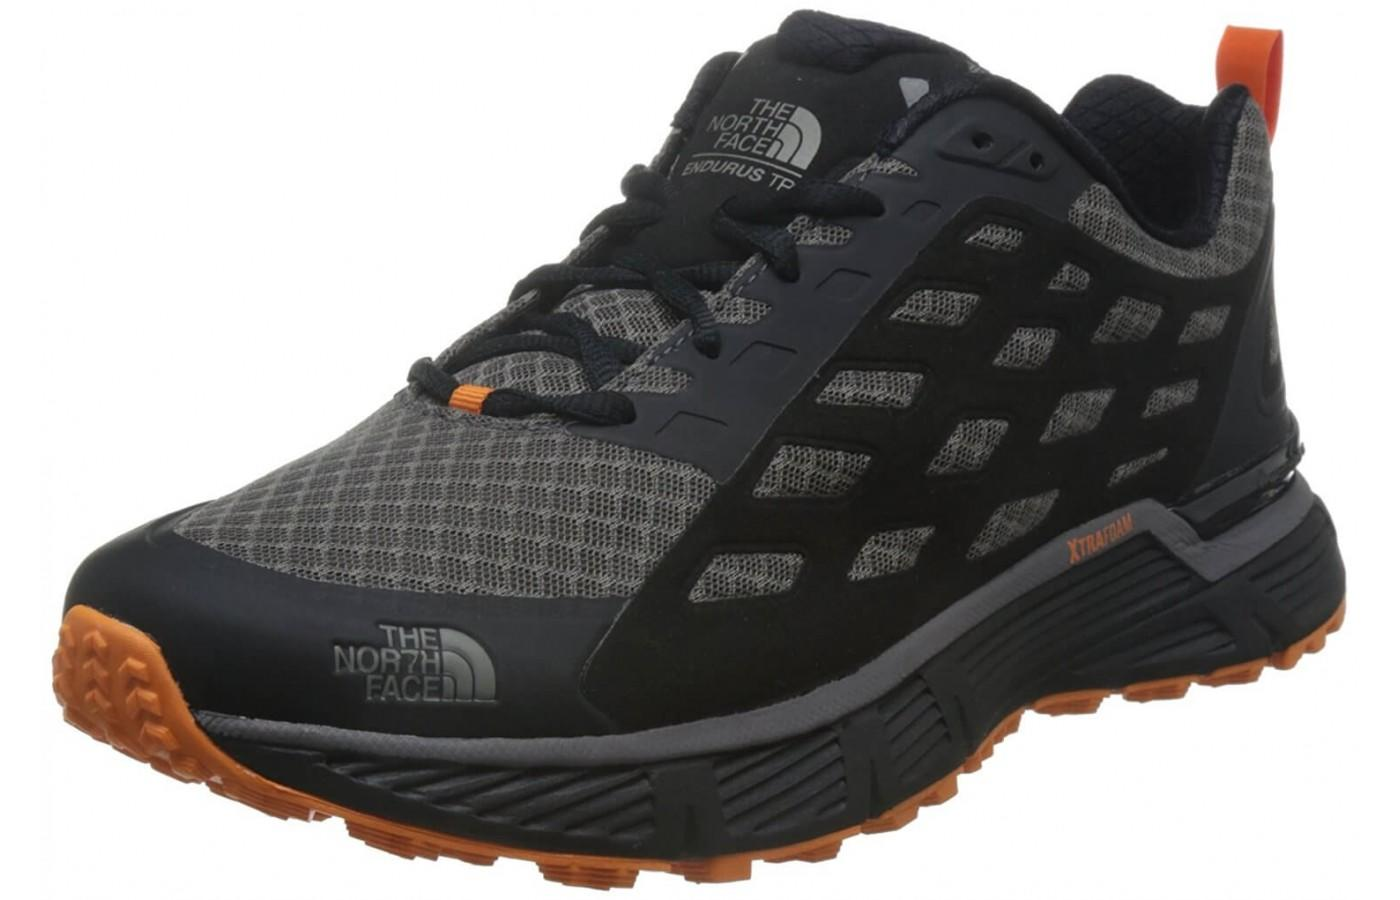 The North Face Endurus TR is a durable, comfortable trail runner